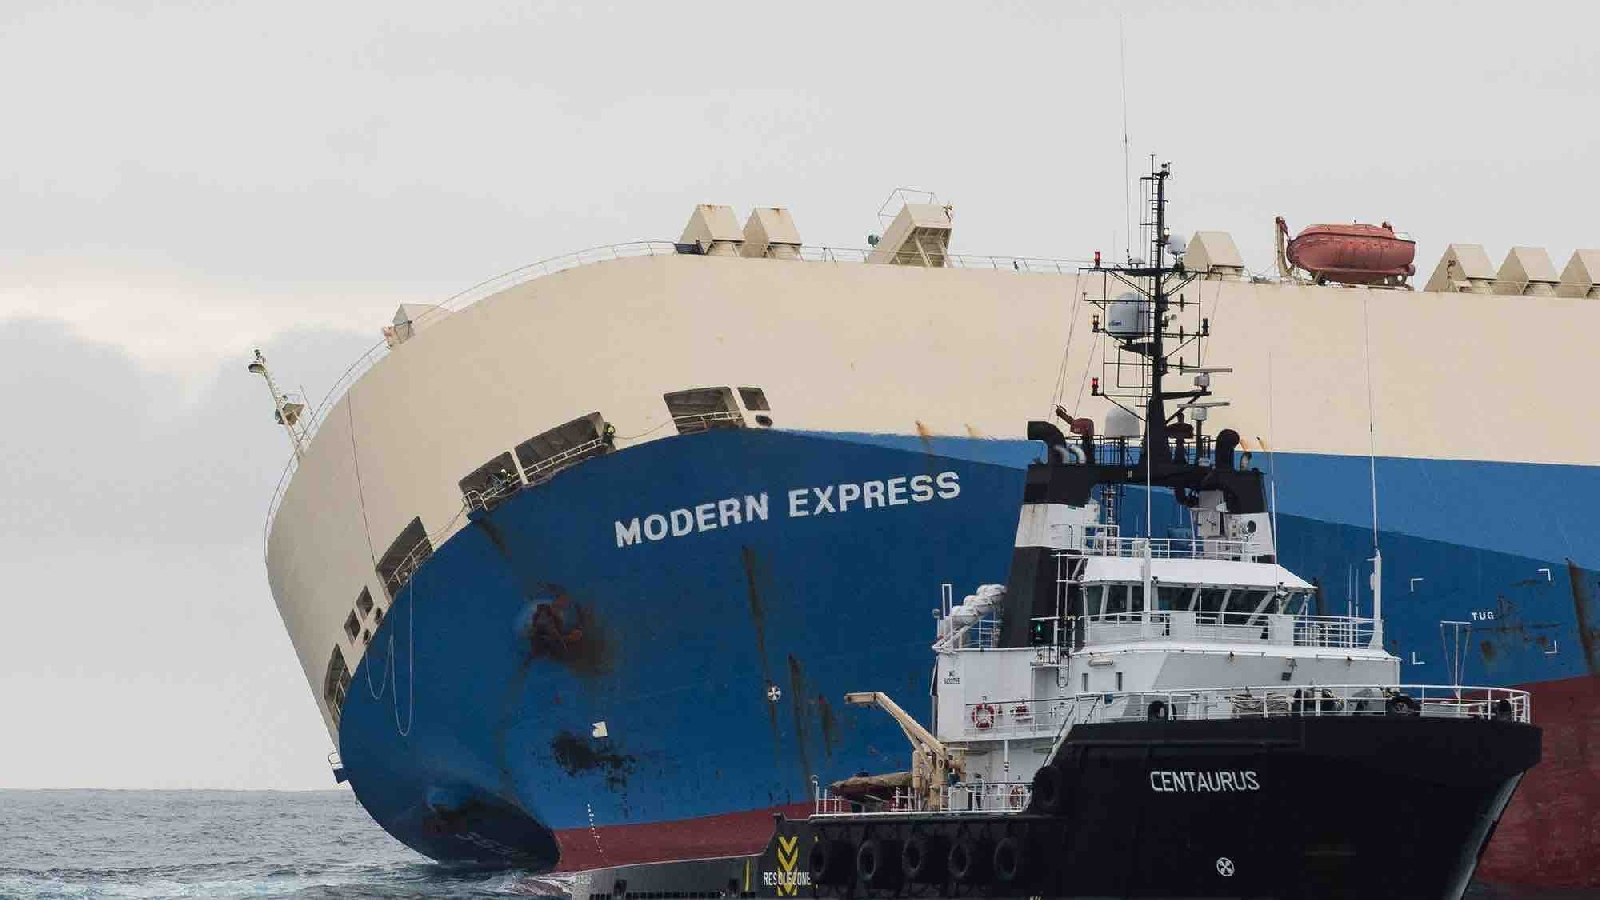 Attempt to take Modern Express in tow successful